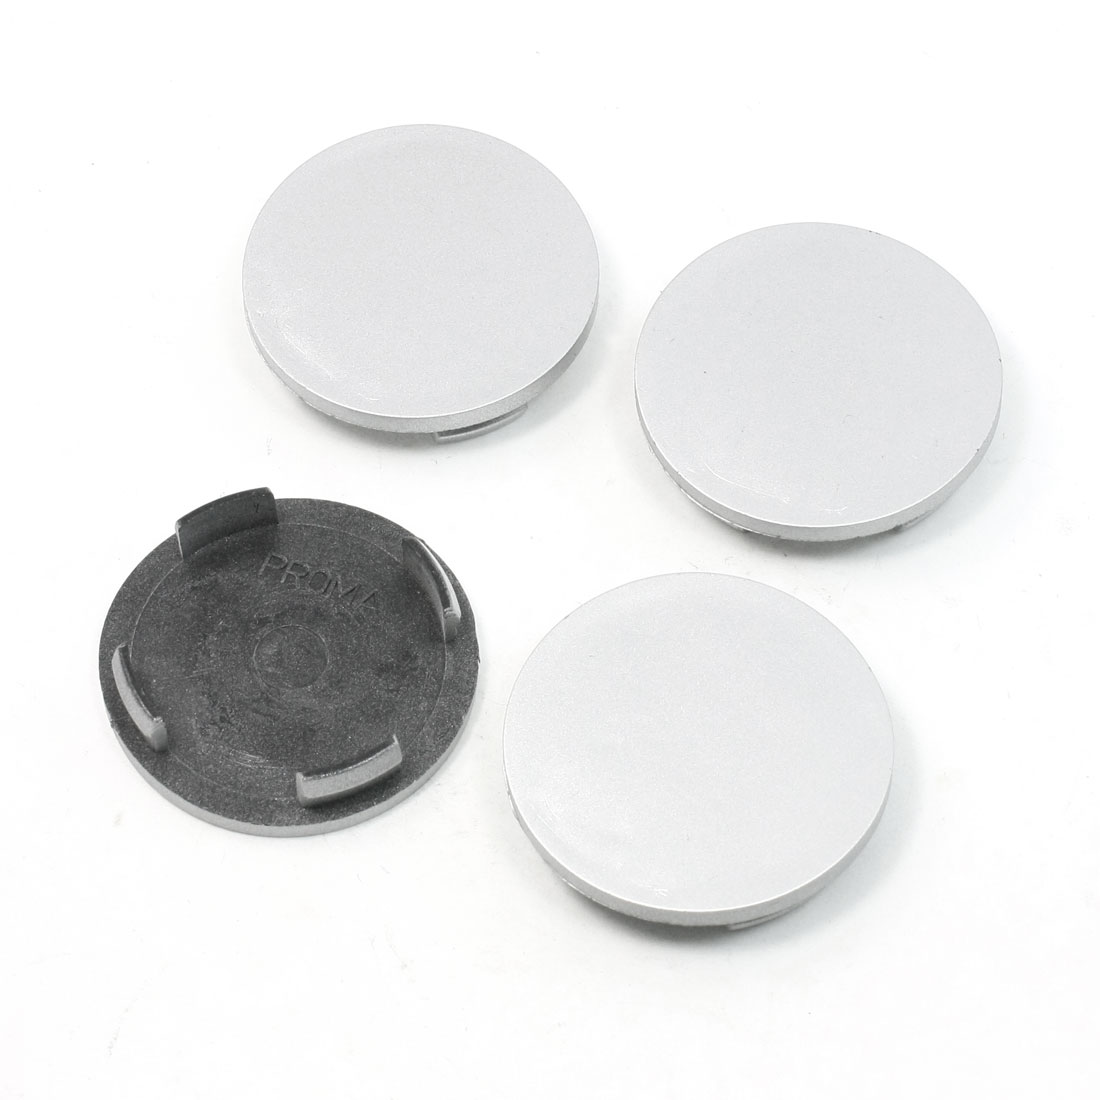 4 Pcs 60mm Dia 4 Plastic Lug Car Truck Wheel Center Hub Caps Covers Silver Tone